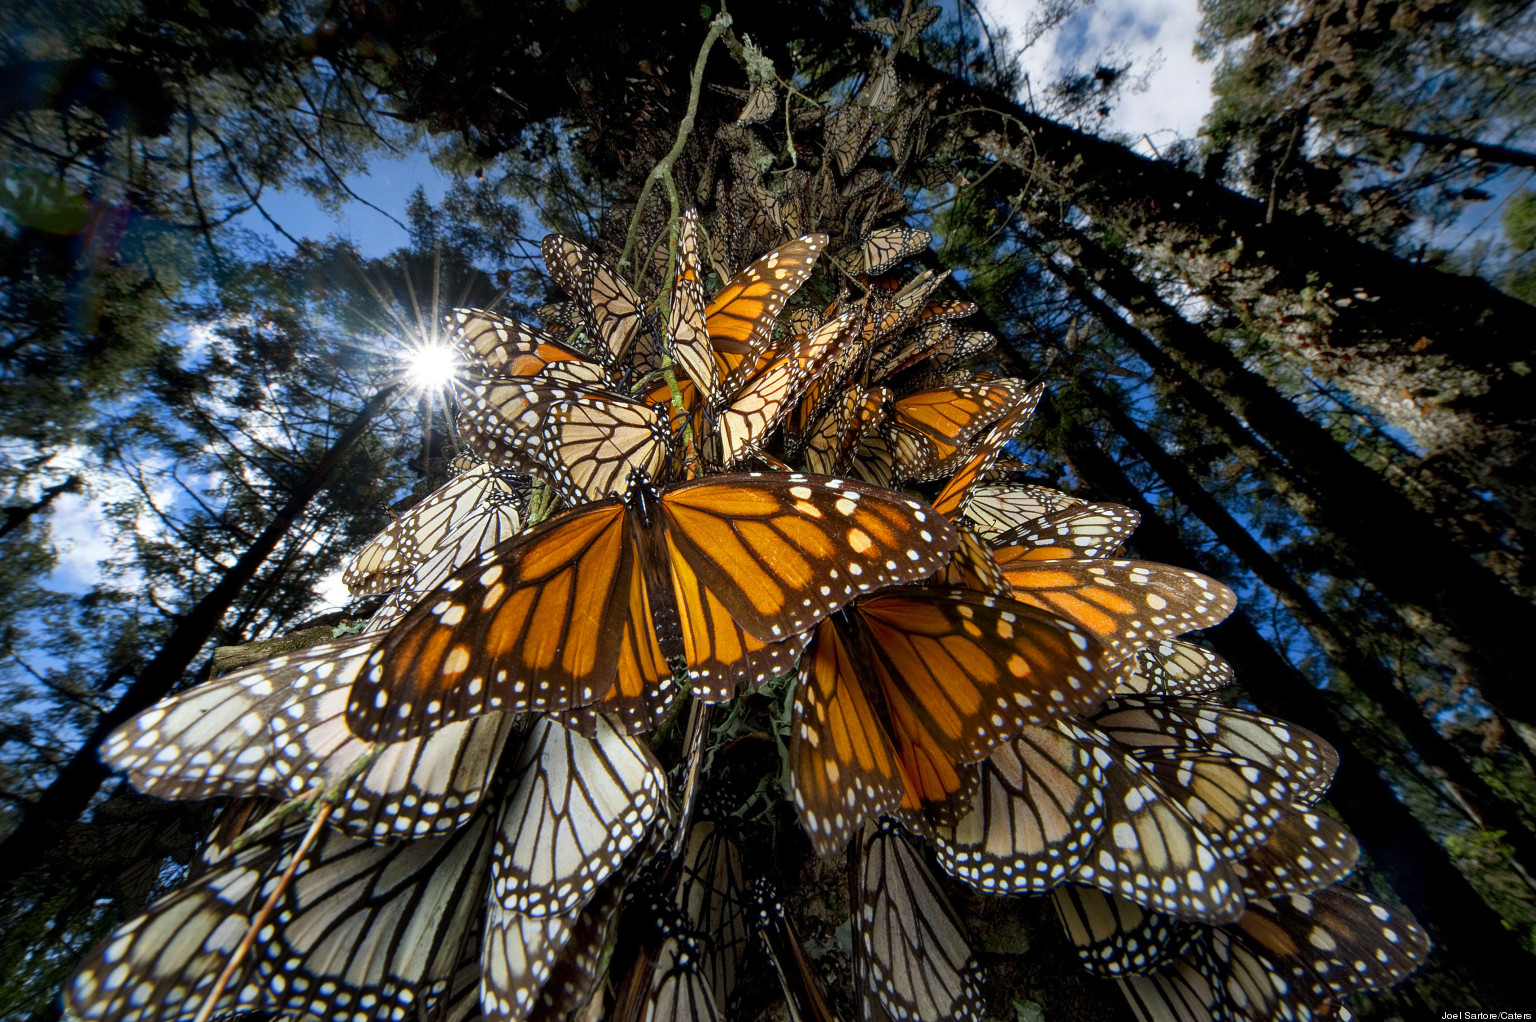 Mingle with millions of monarchs in Mexico